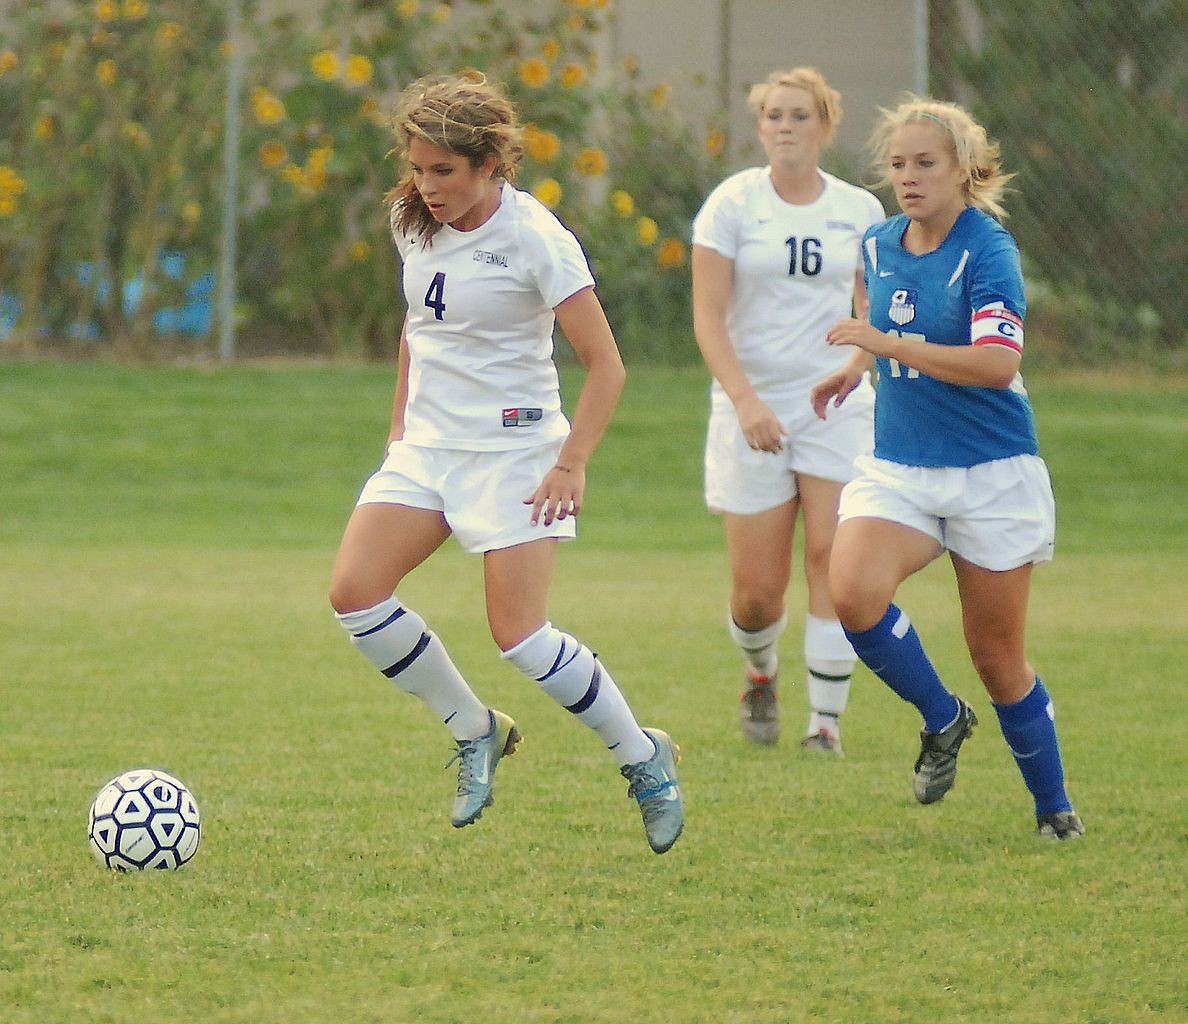 Girls Playing Soccer Image Source Wikimedia Org Girl Playing Soccer Female Athletes Sports